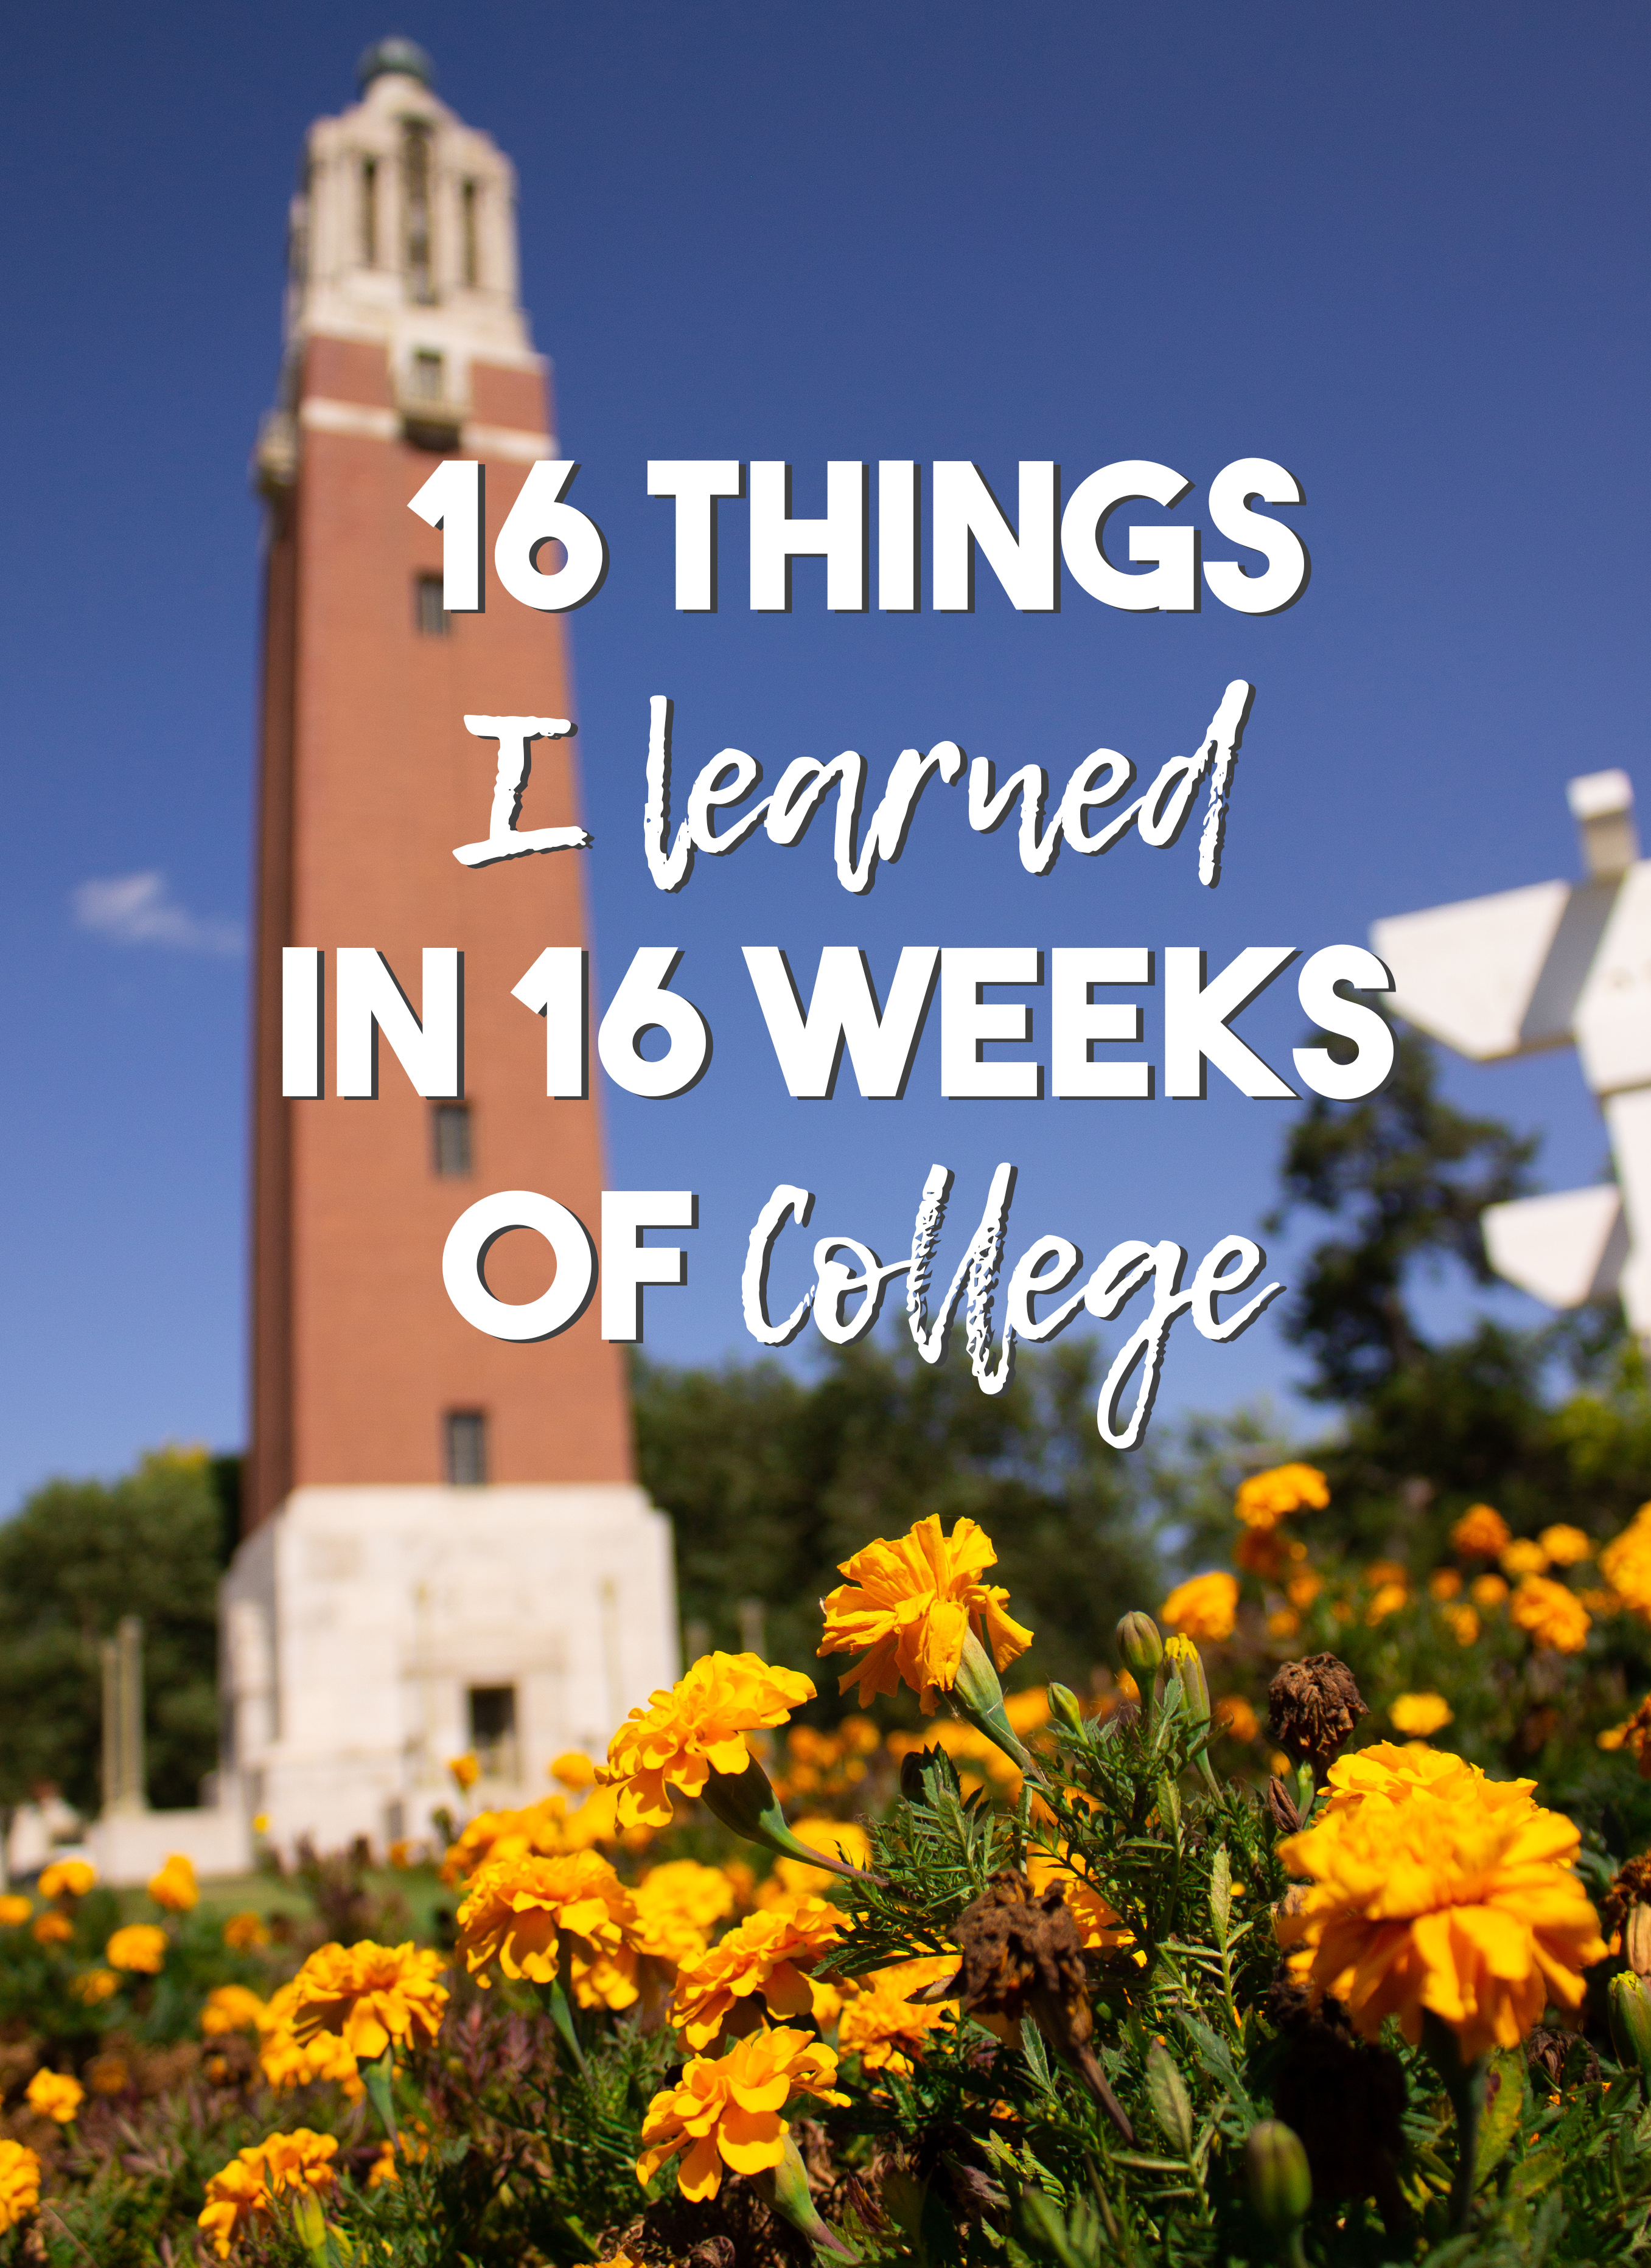 16 Things I Learned in 16 Weeks of College | Junior Year Spring